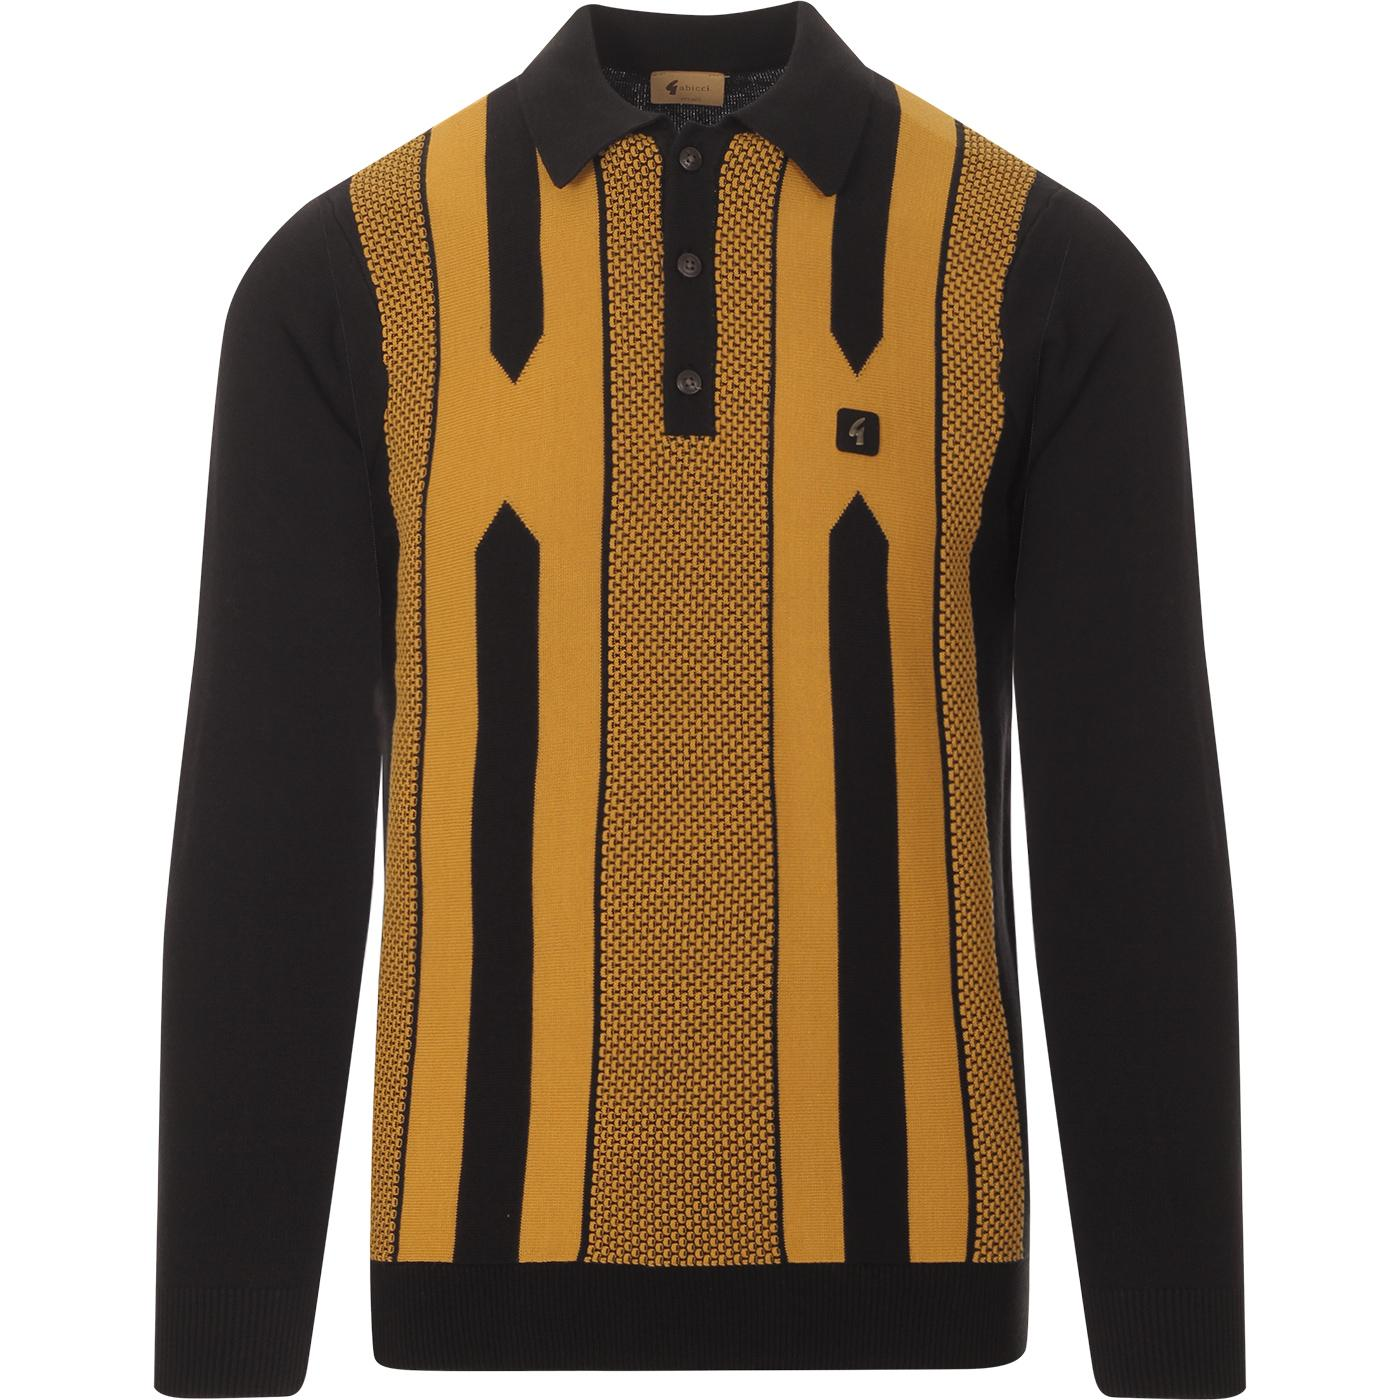 Cooper GABICCI VINTAGE Retro 80s Knitted Polo B